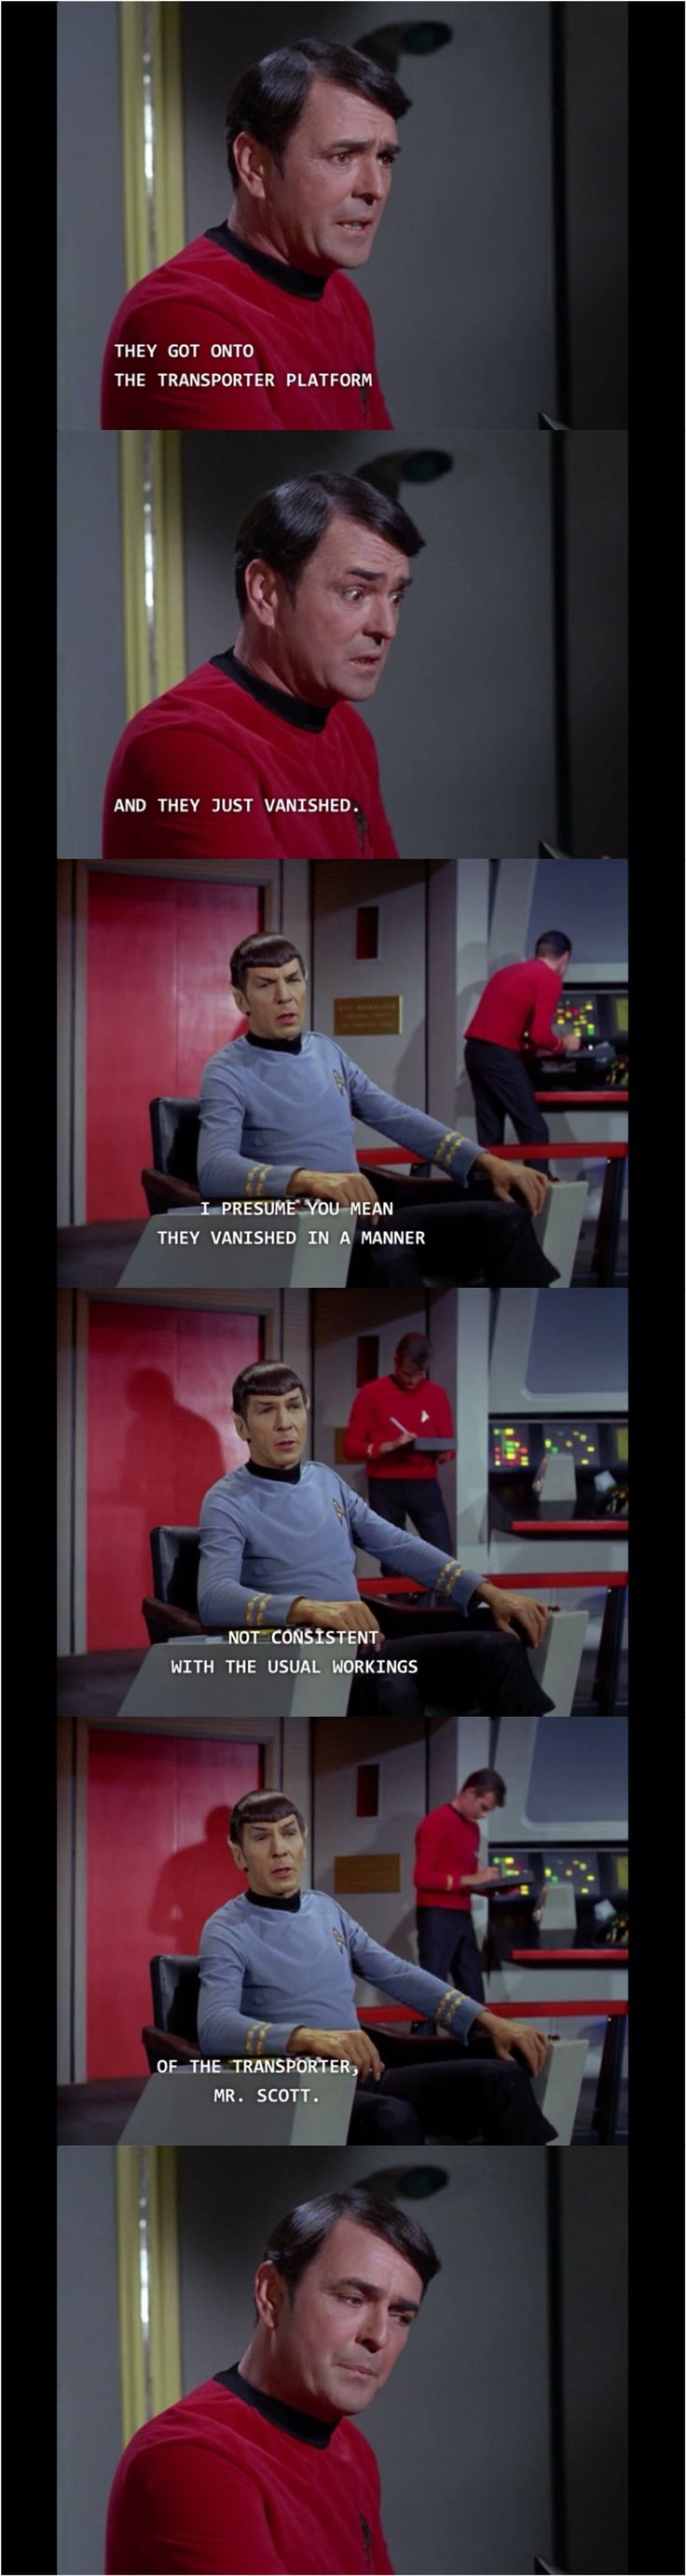 """The last frame should have a thought bubble that reads, """"Aye, ye pointy-eared know-it-all!"""""""